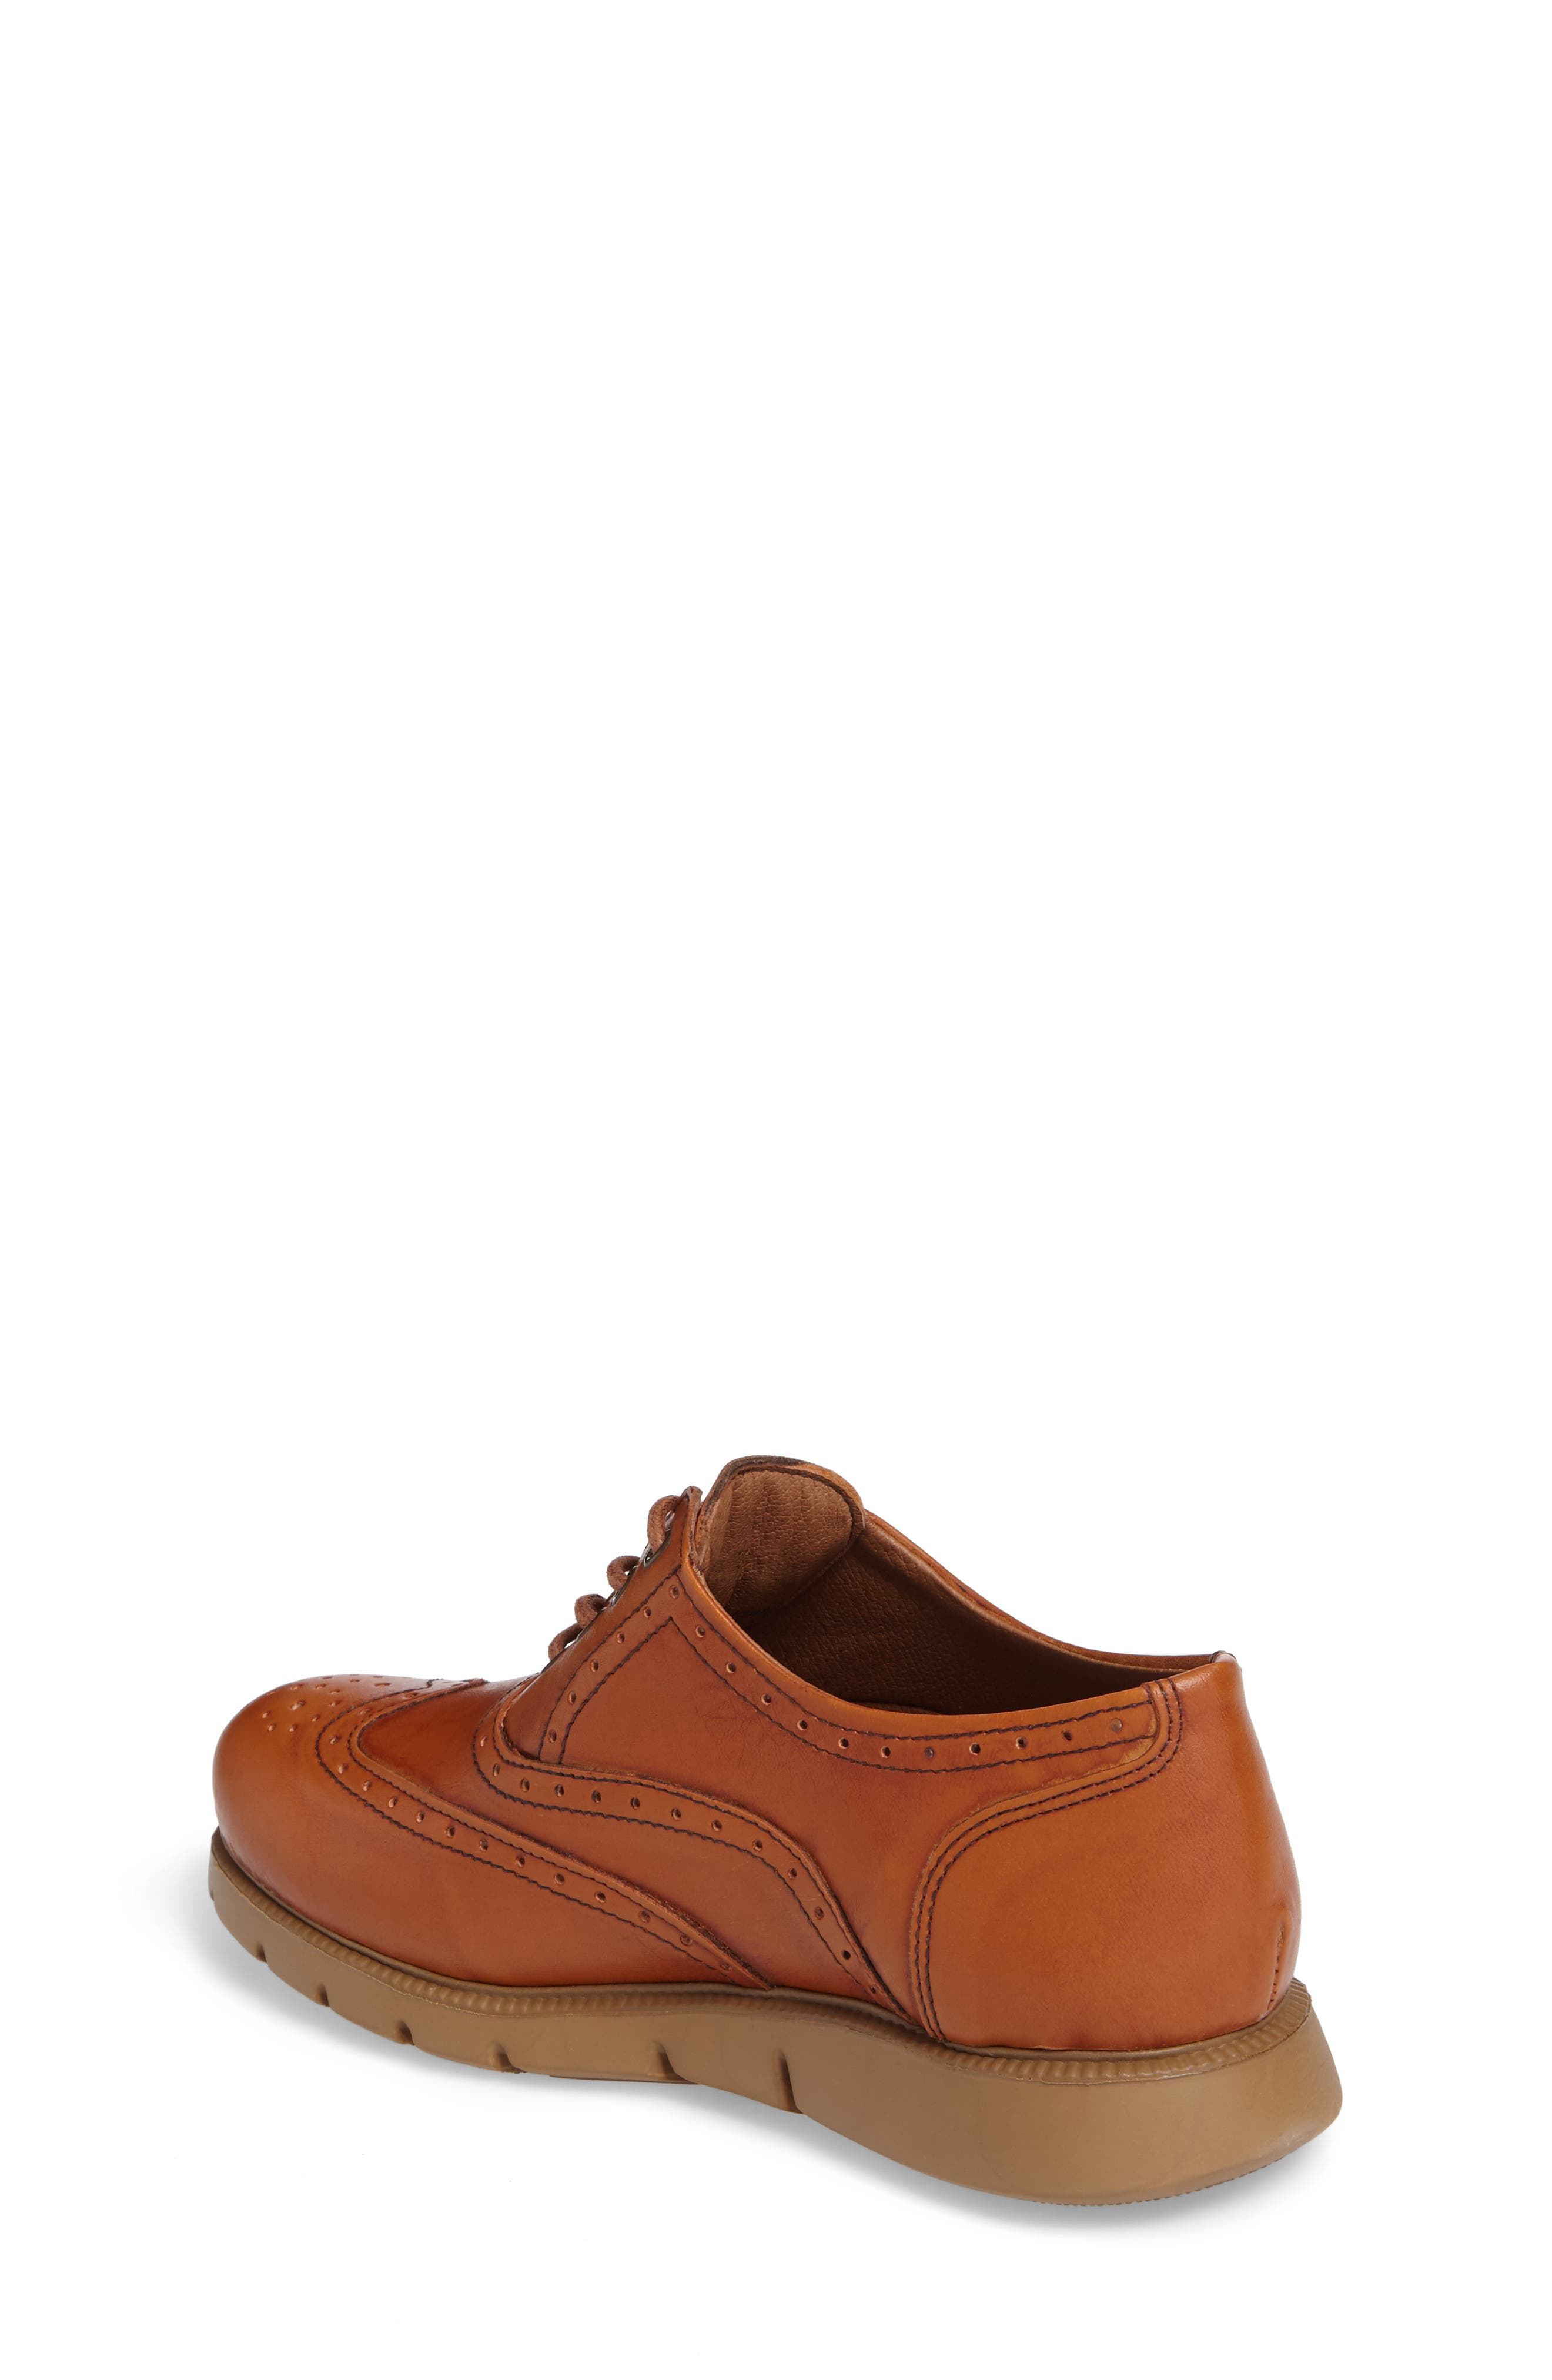 Warble Wingtip Oxford,                             Alternate thumbnail 2, color,                             Naturale